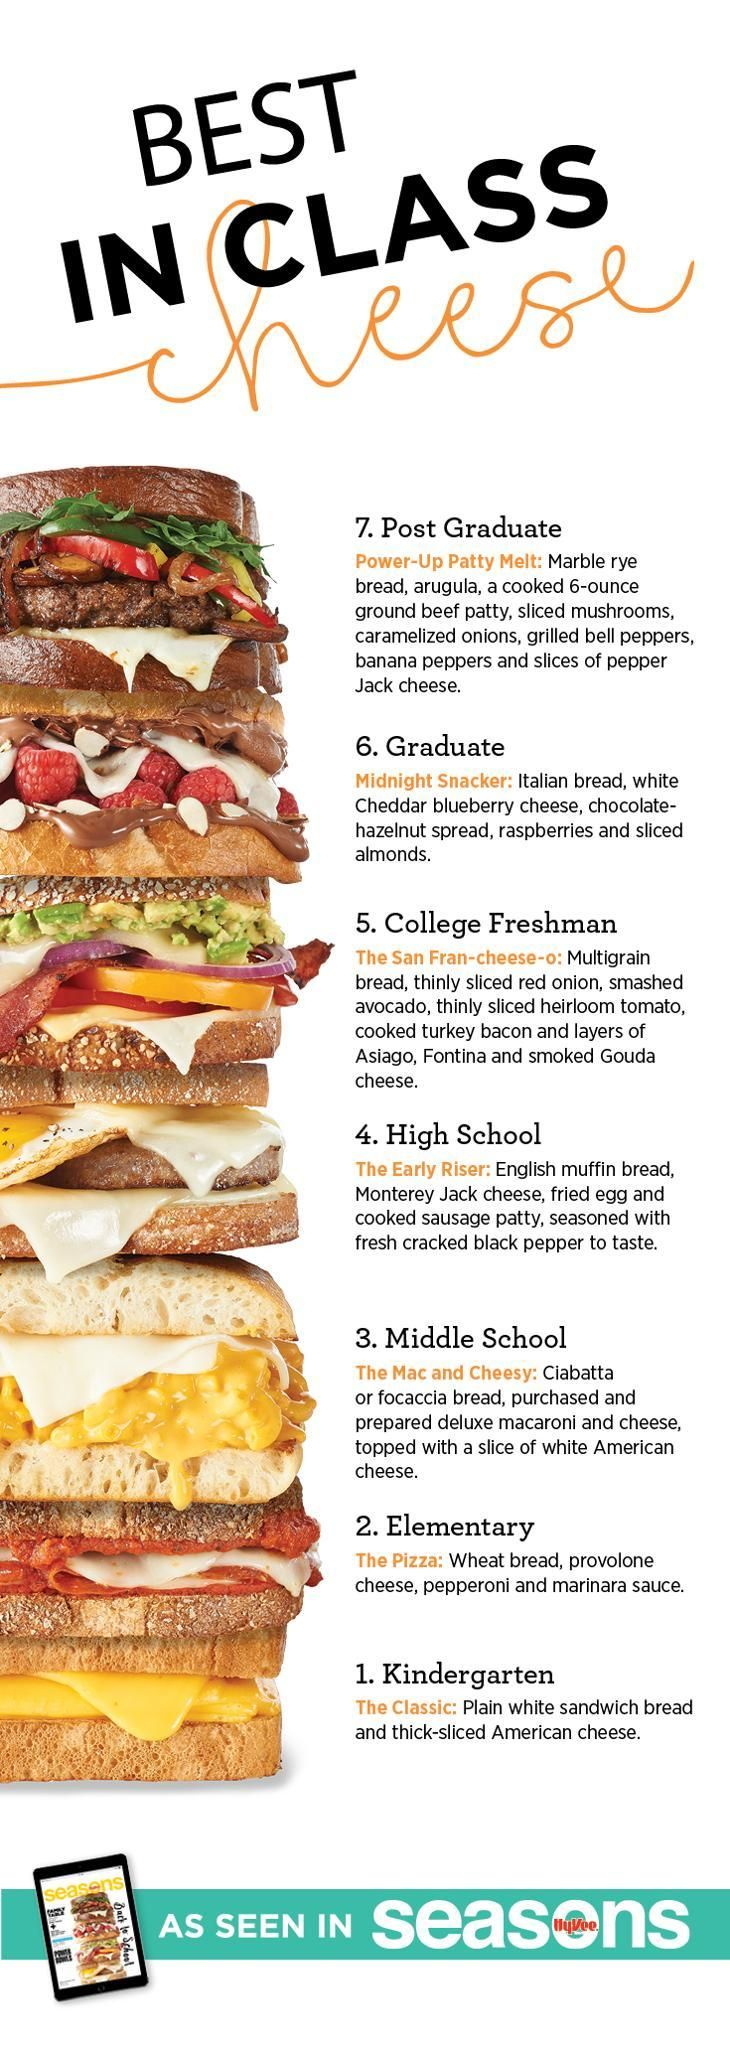 Best-in-class grilled cheese ideas for kids of all ages.